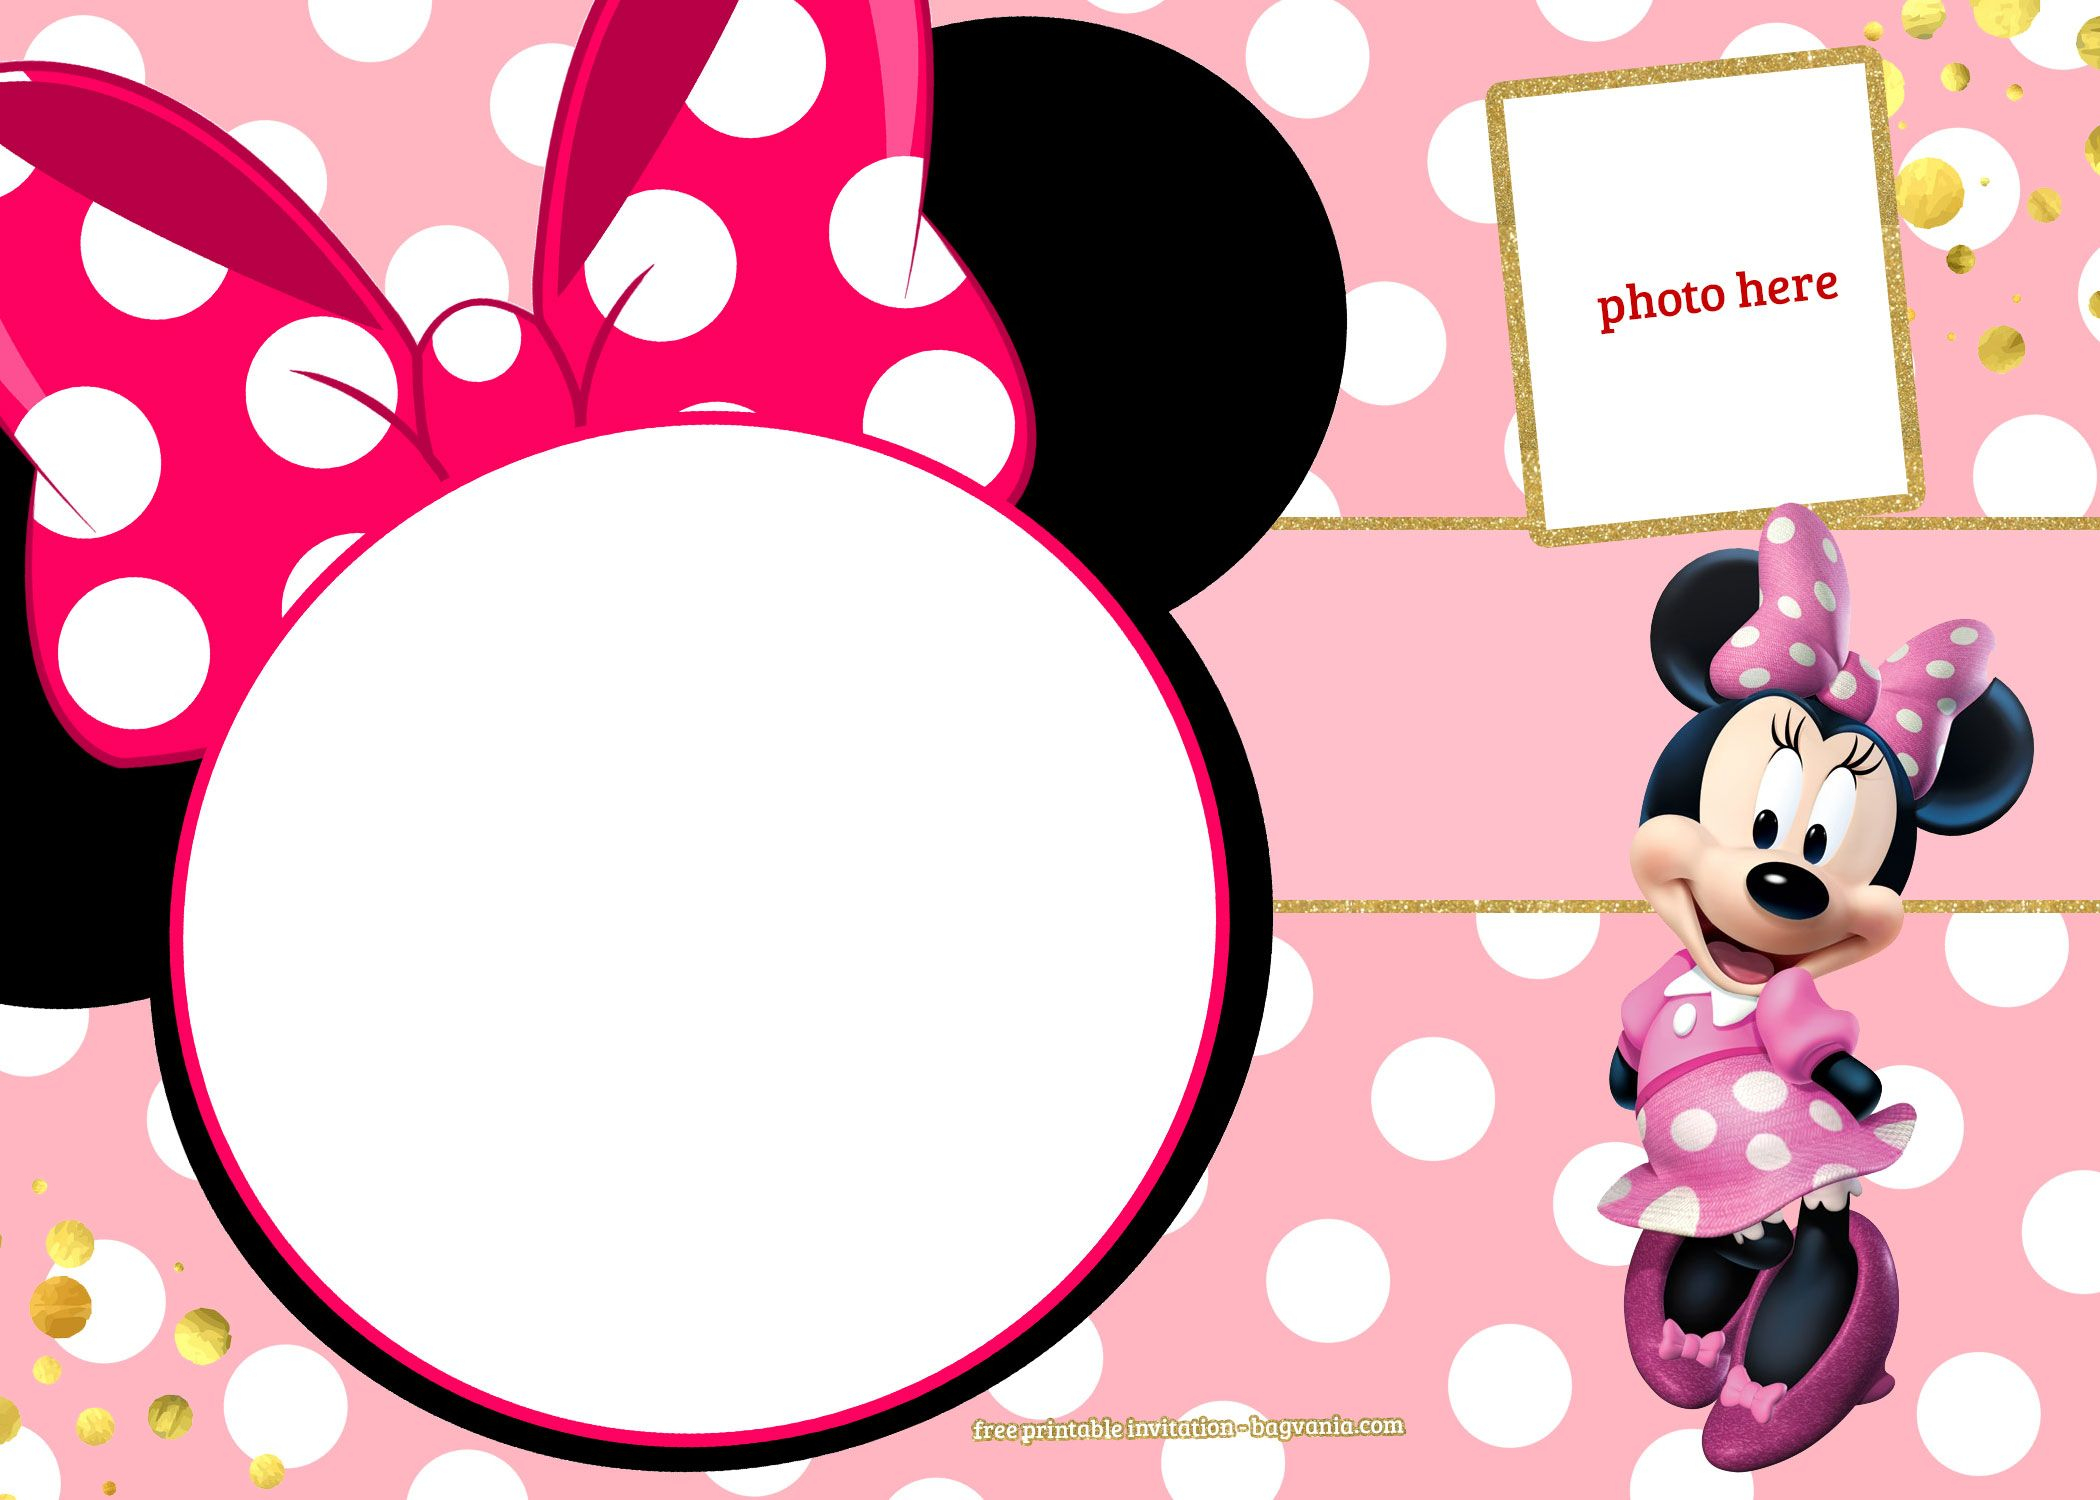 Free Printable Minnie Mouse Pinky Birthday Invitation | Design - Free Minnie Mouse Printable Templates